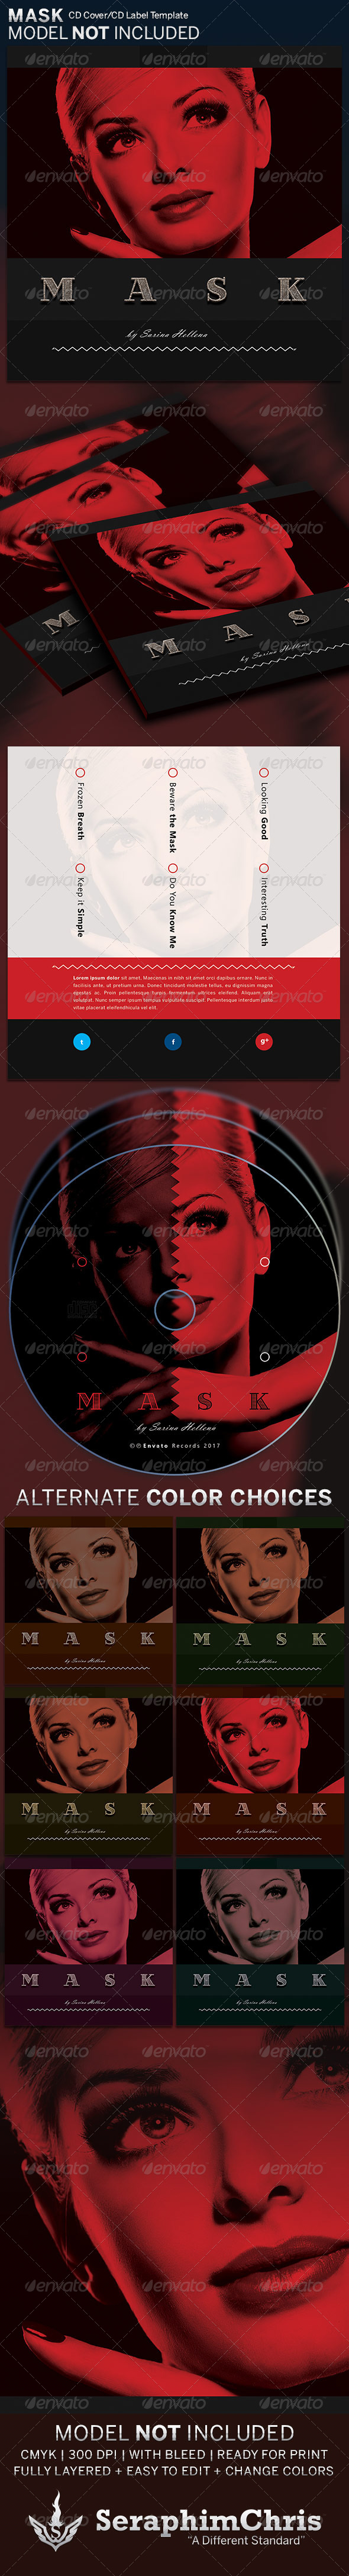 Mask: CD Cover Artwork Template - CD & DVD Artwork Print Templates